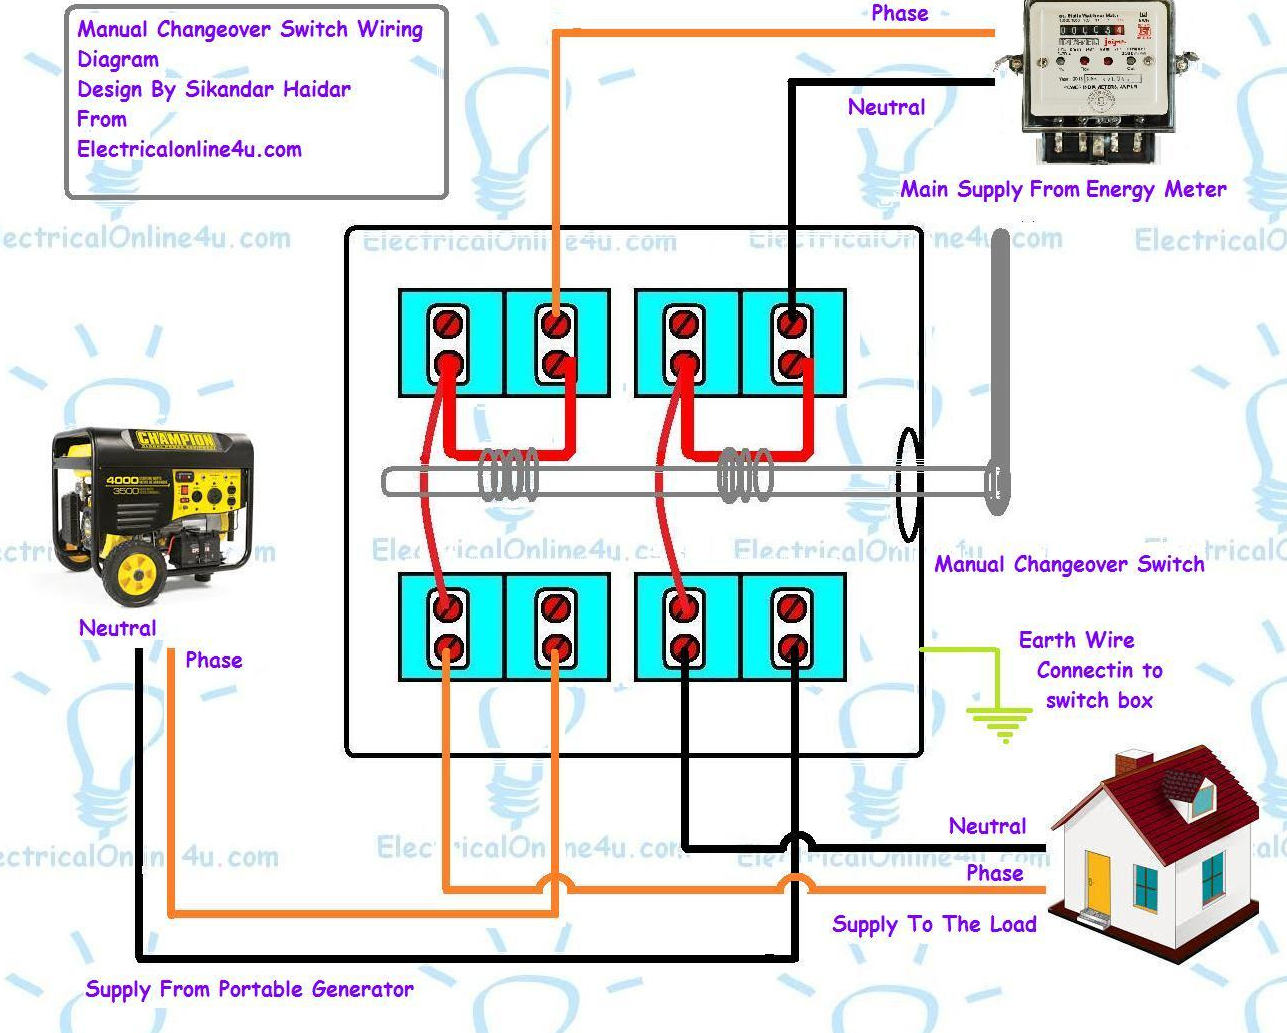 Manual changeover switch wiring diagram for portable